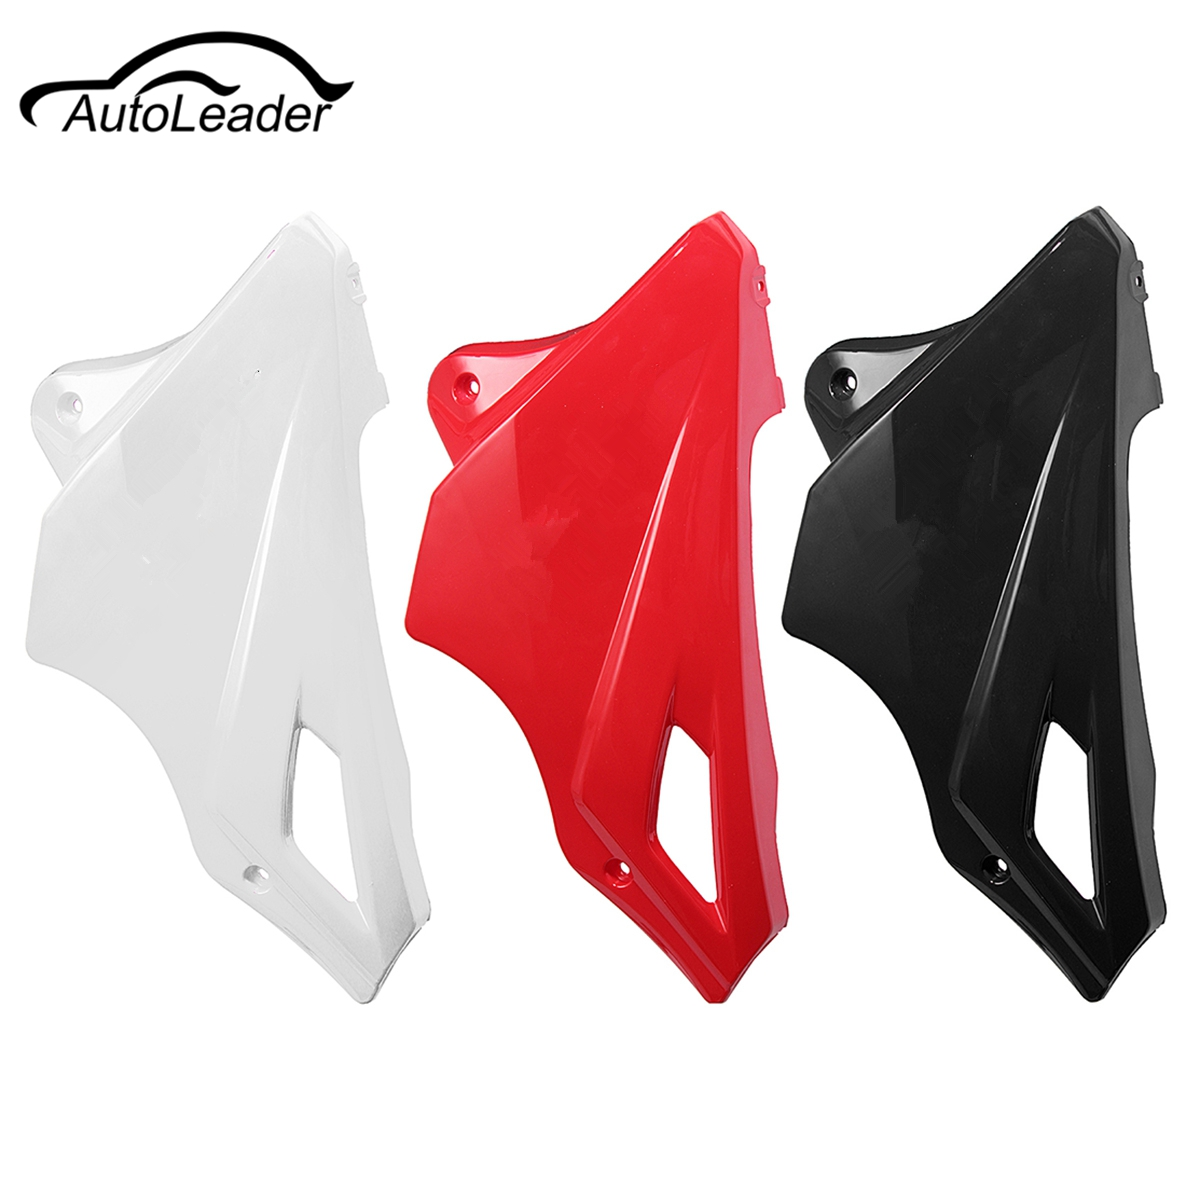 Autoleader 1 Pair Engine Protector Guard Cover Under Cowl For Grom MSX 125 2013 2014 2015 Motorcycle Accessories motorcycle accessories motorbike front sprocket chain guard cover left side engine for honda grom msx125 msx 125 2013 2014 2015